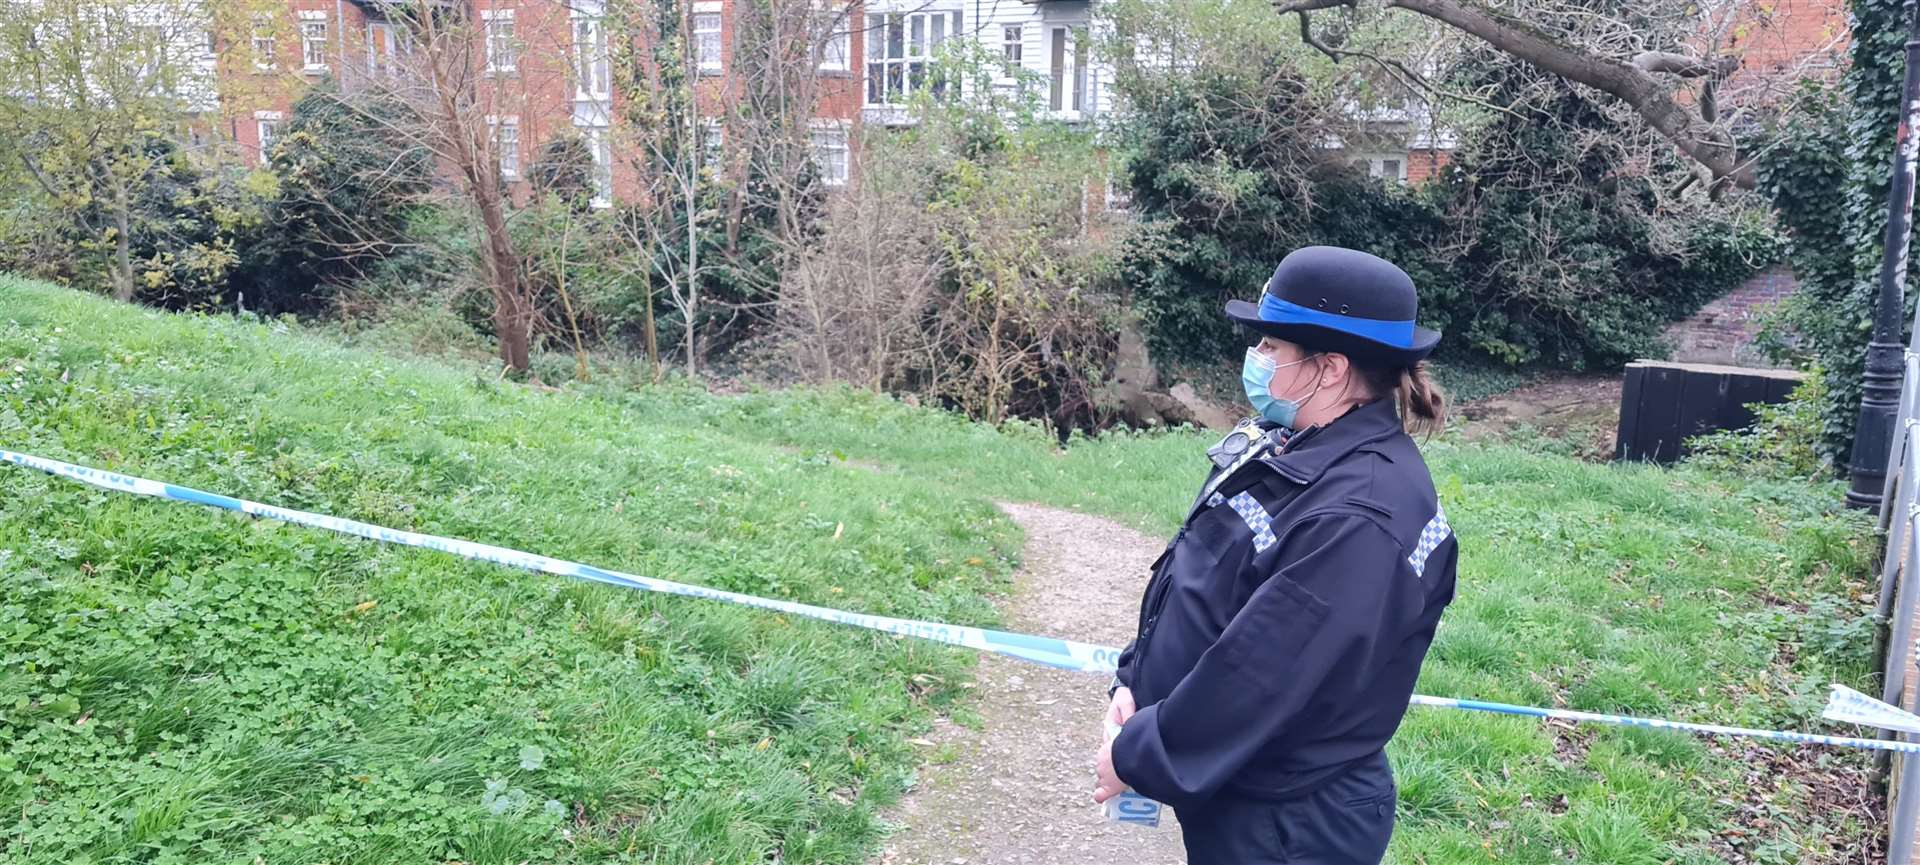 A section of the River Stour has been taped off by police